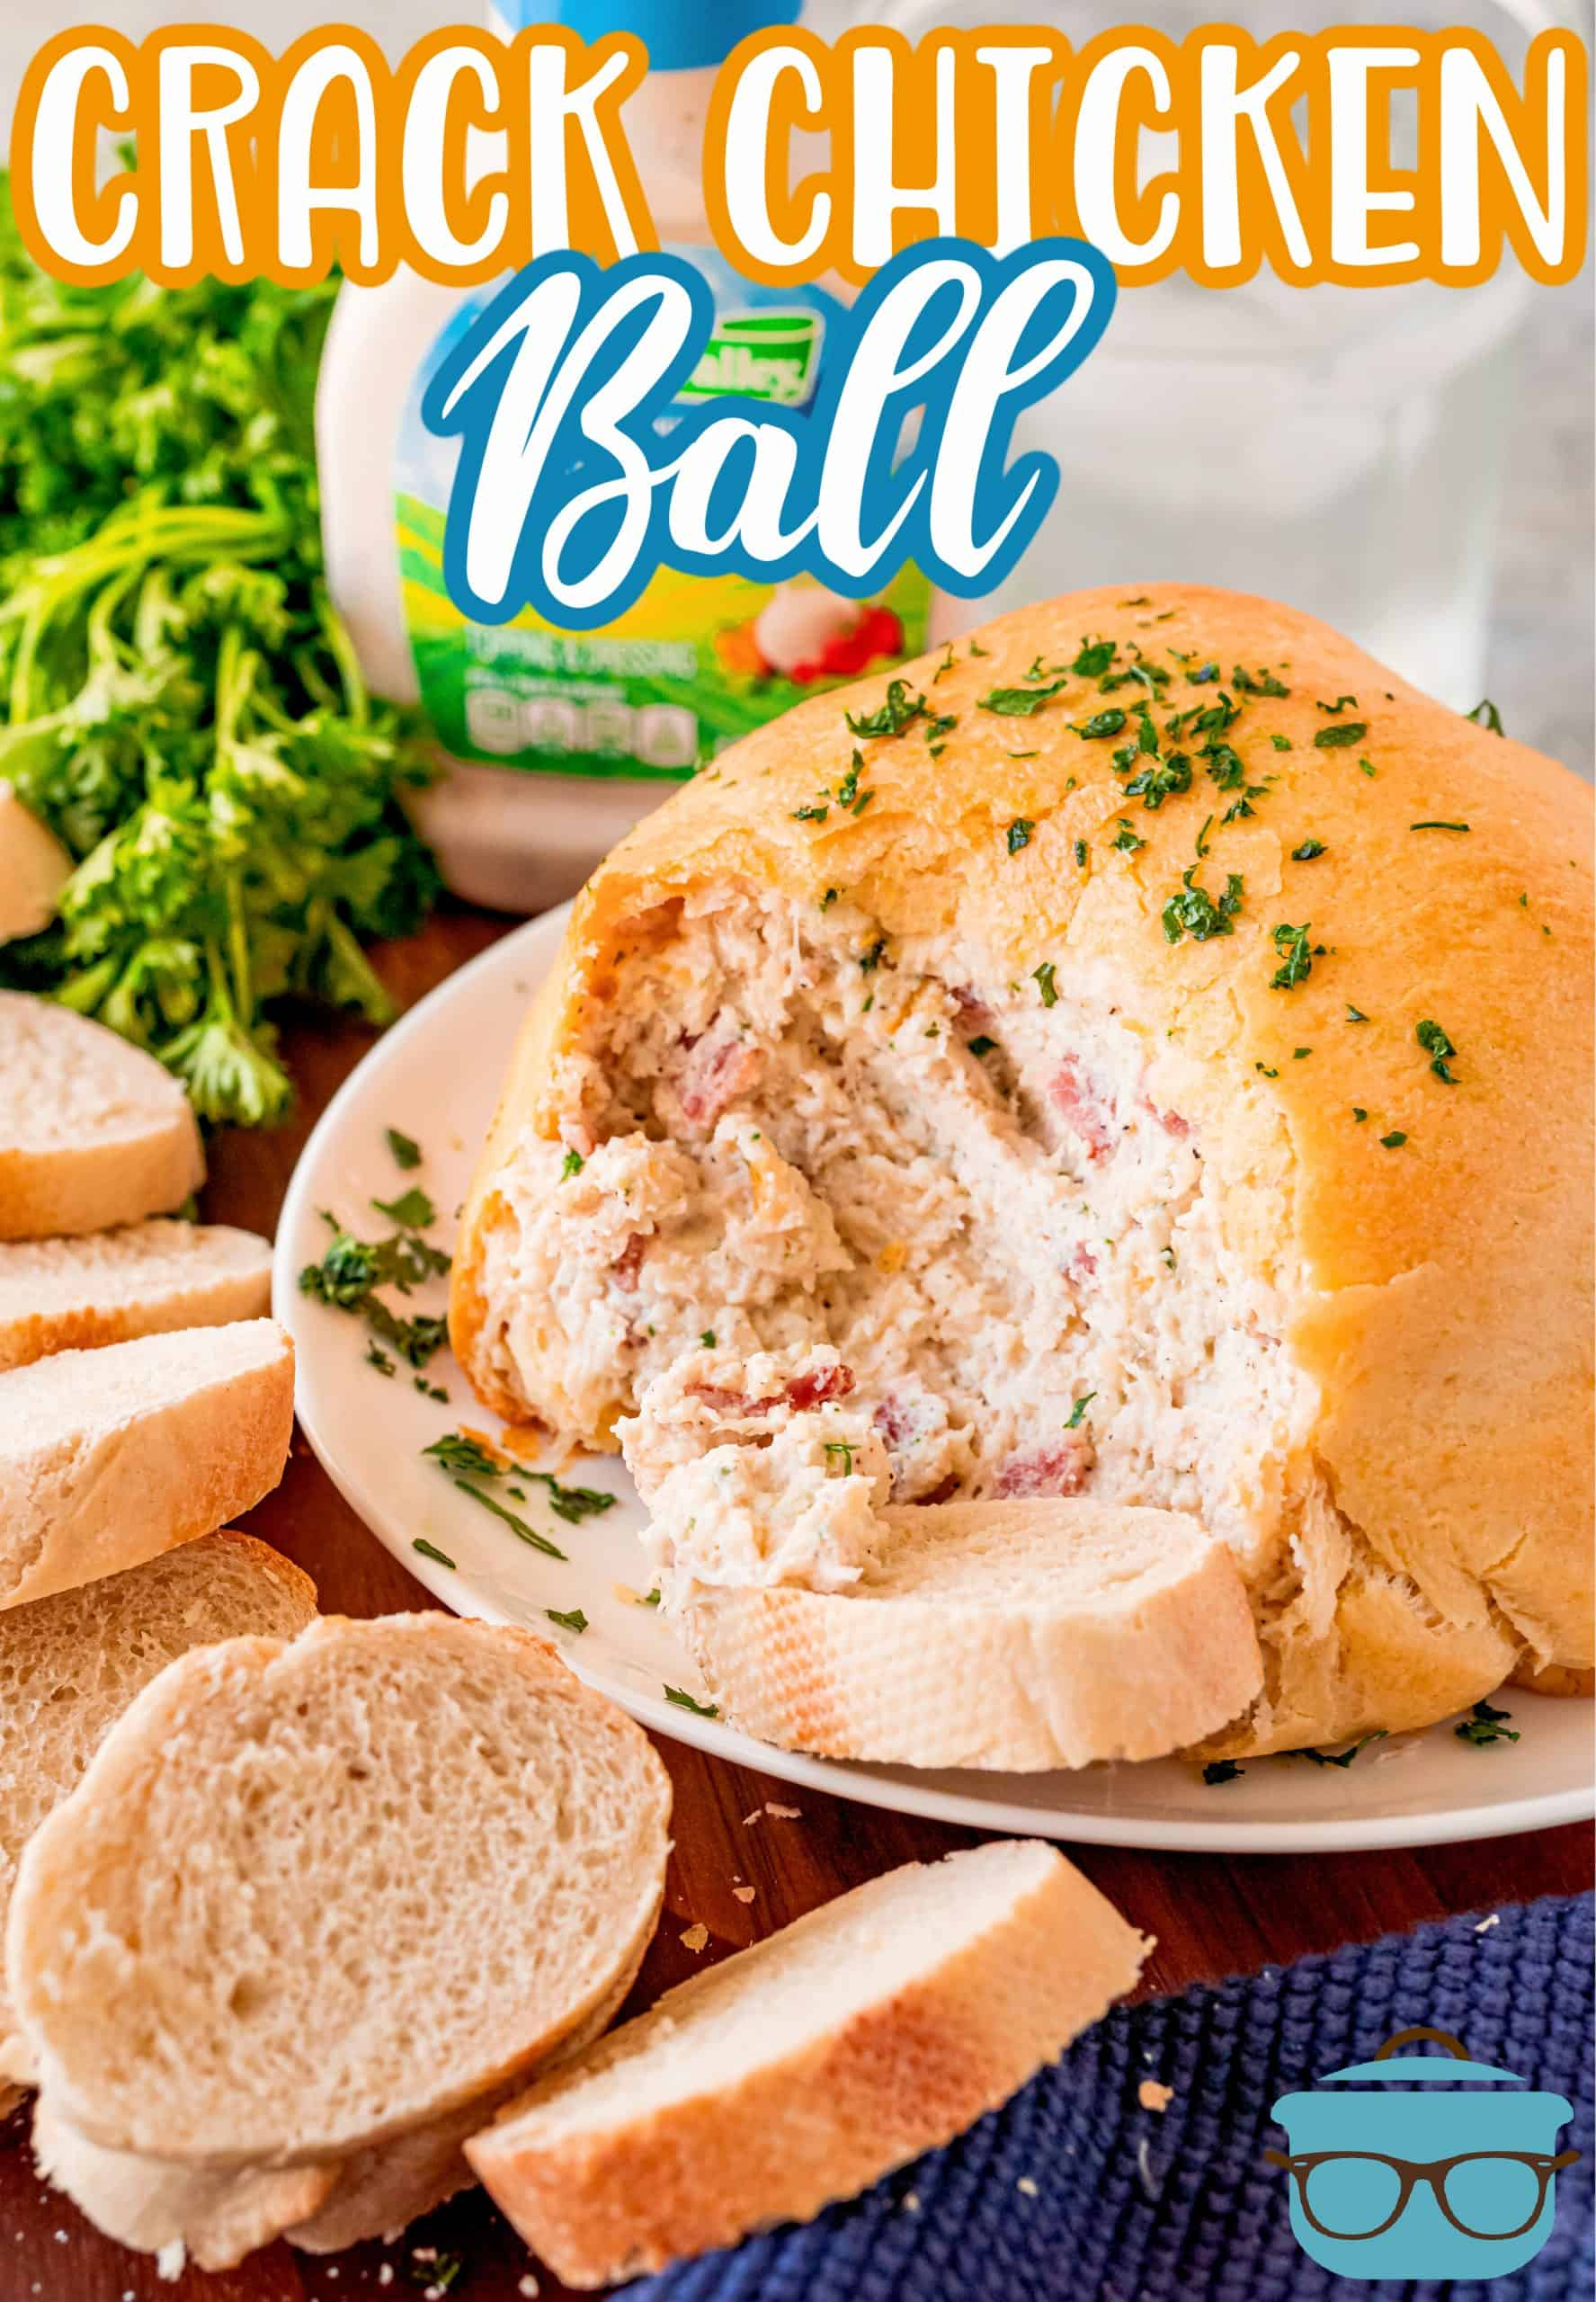 A delicious chicken, bacon, ranch and cheese mixture all wrapped in crescent dough. This Crack Chicken Ball is an irresistible appetizer you can't stop eating!